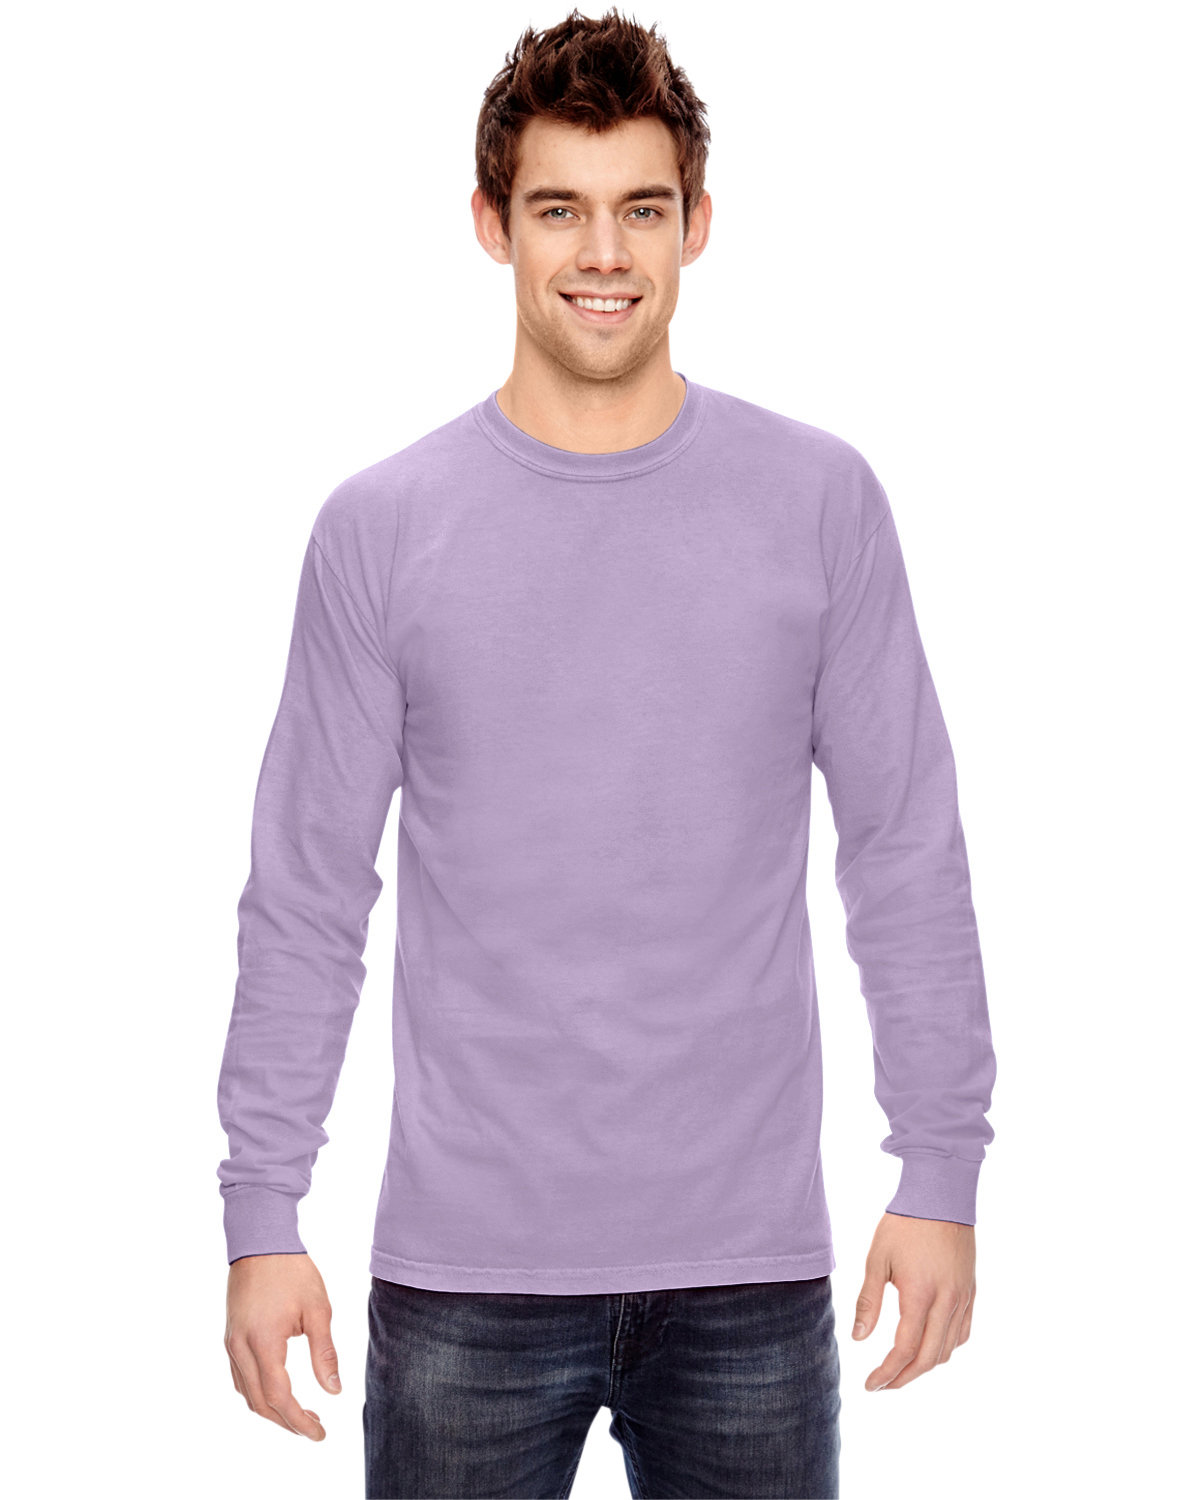 Comfort Colors Adult Heavyweight Long-Sleeve T-Shirt ORCHID